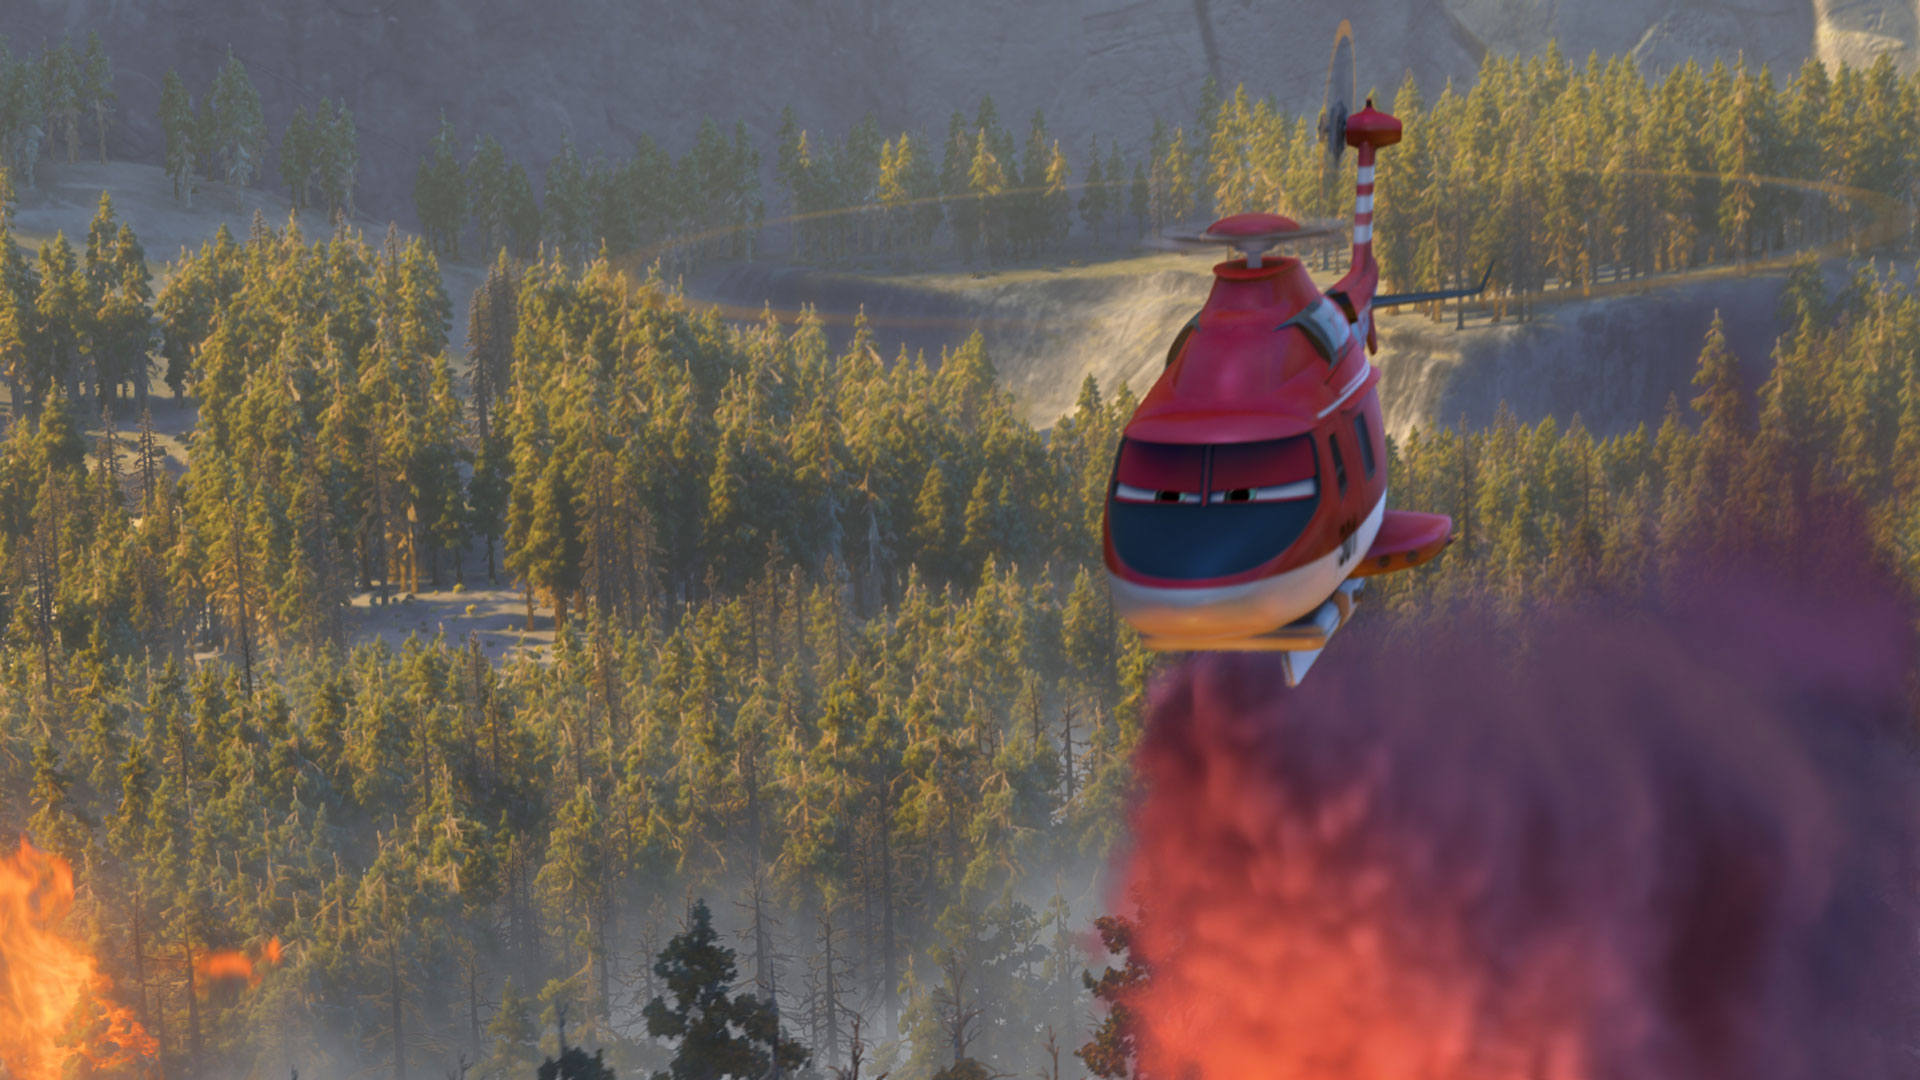 Blade ranger forest fire wallpaper hd blade ranger forest fire planes fire and rescue voltagebd Gallery